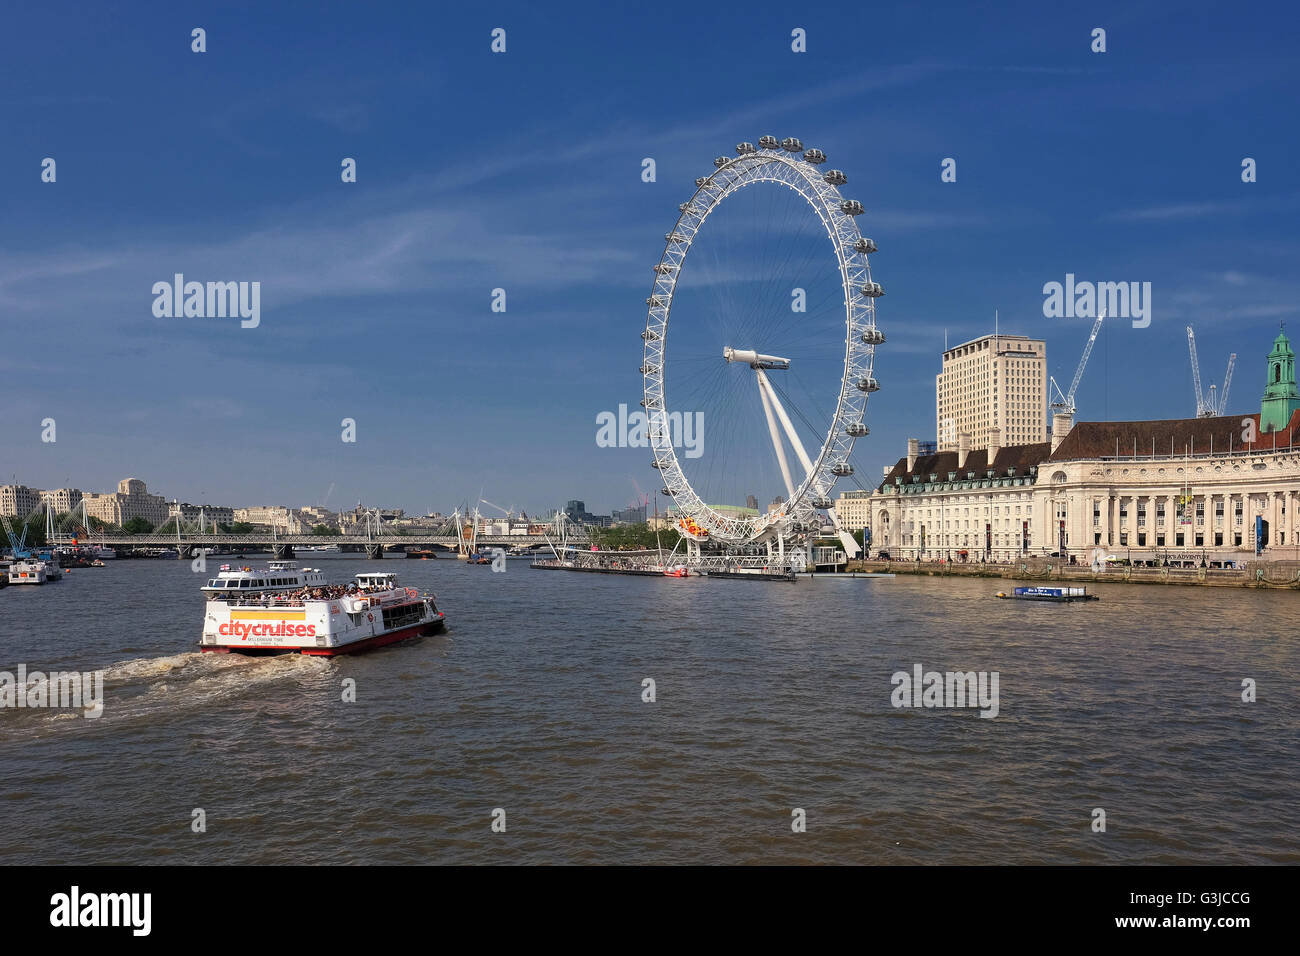 A cityscape from Westminster Bridge which includes the London eye and sightseeing boat on the Thames. - Stock Image